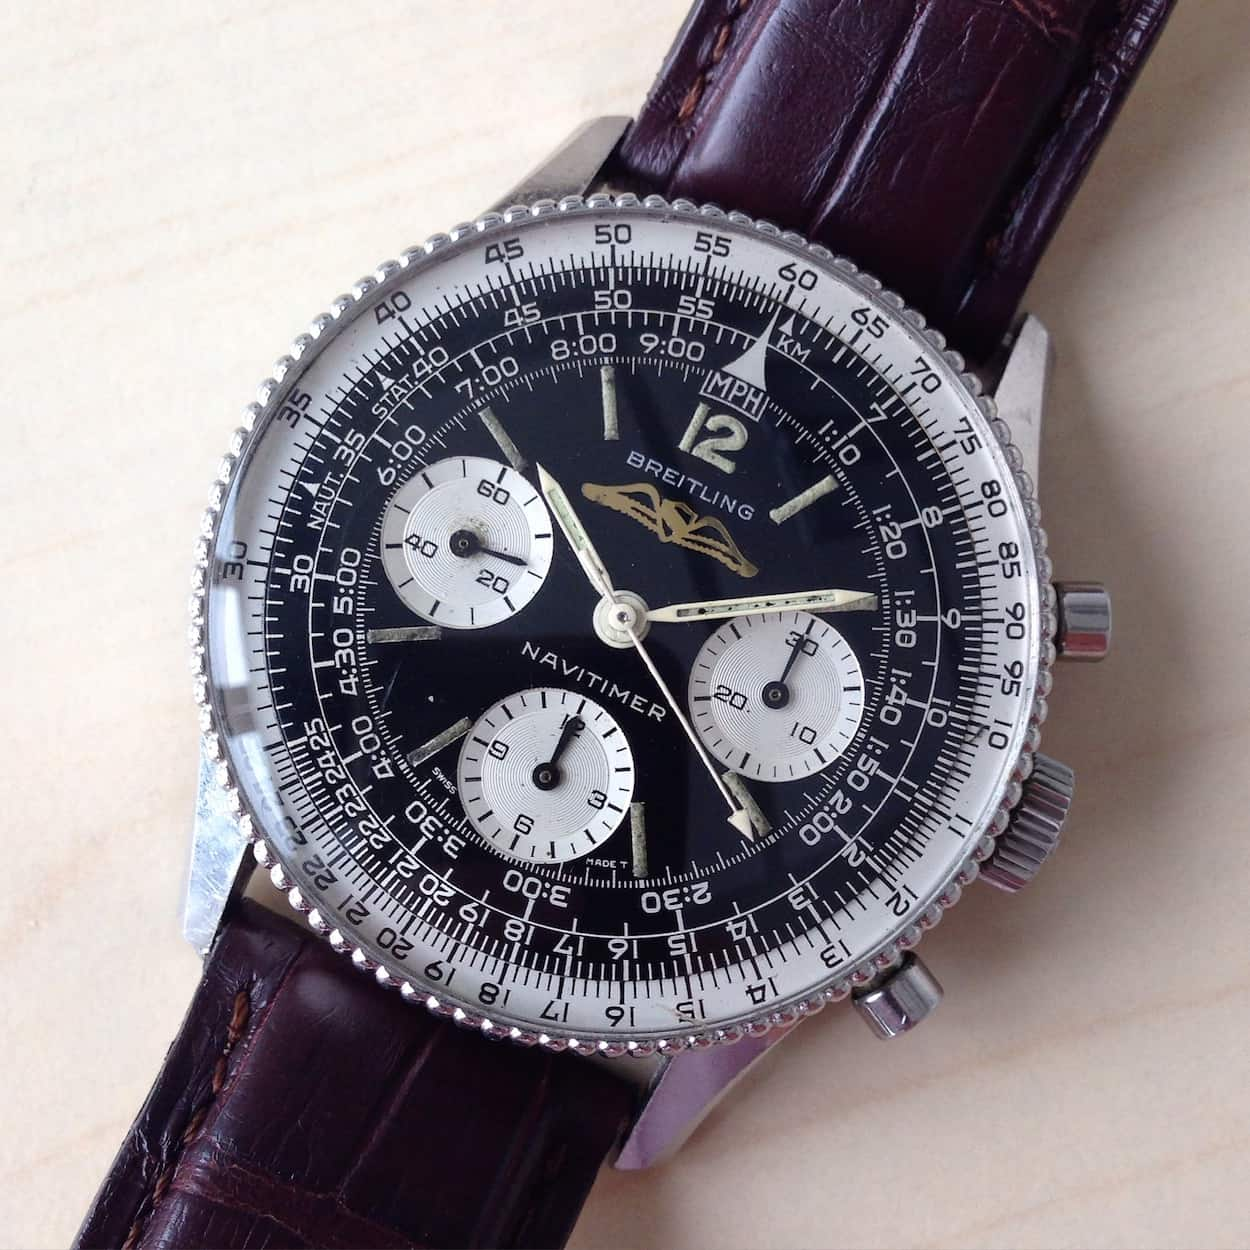 breitling aviator price yz8y  1965-66 Transitional ref806 Navitimer